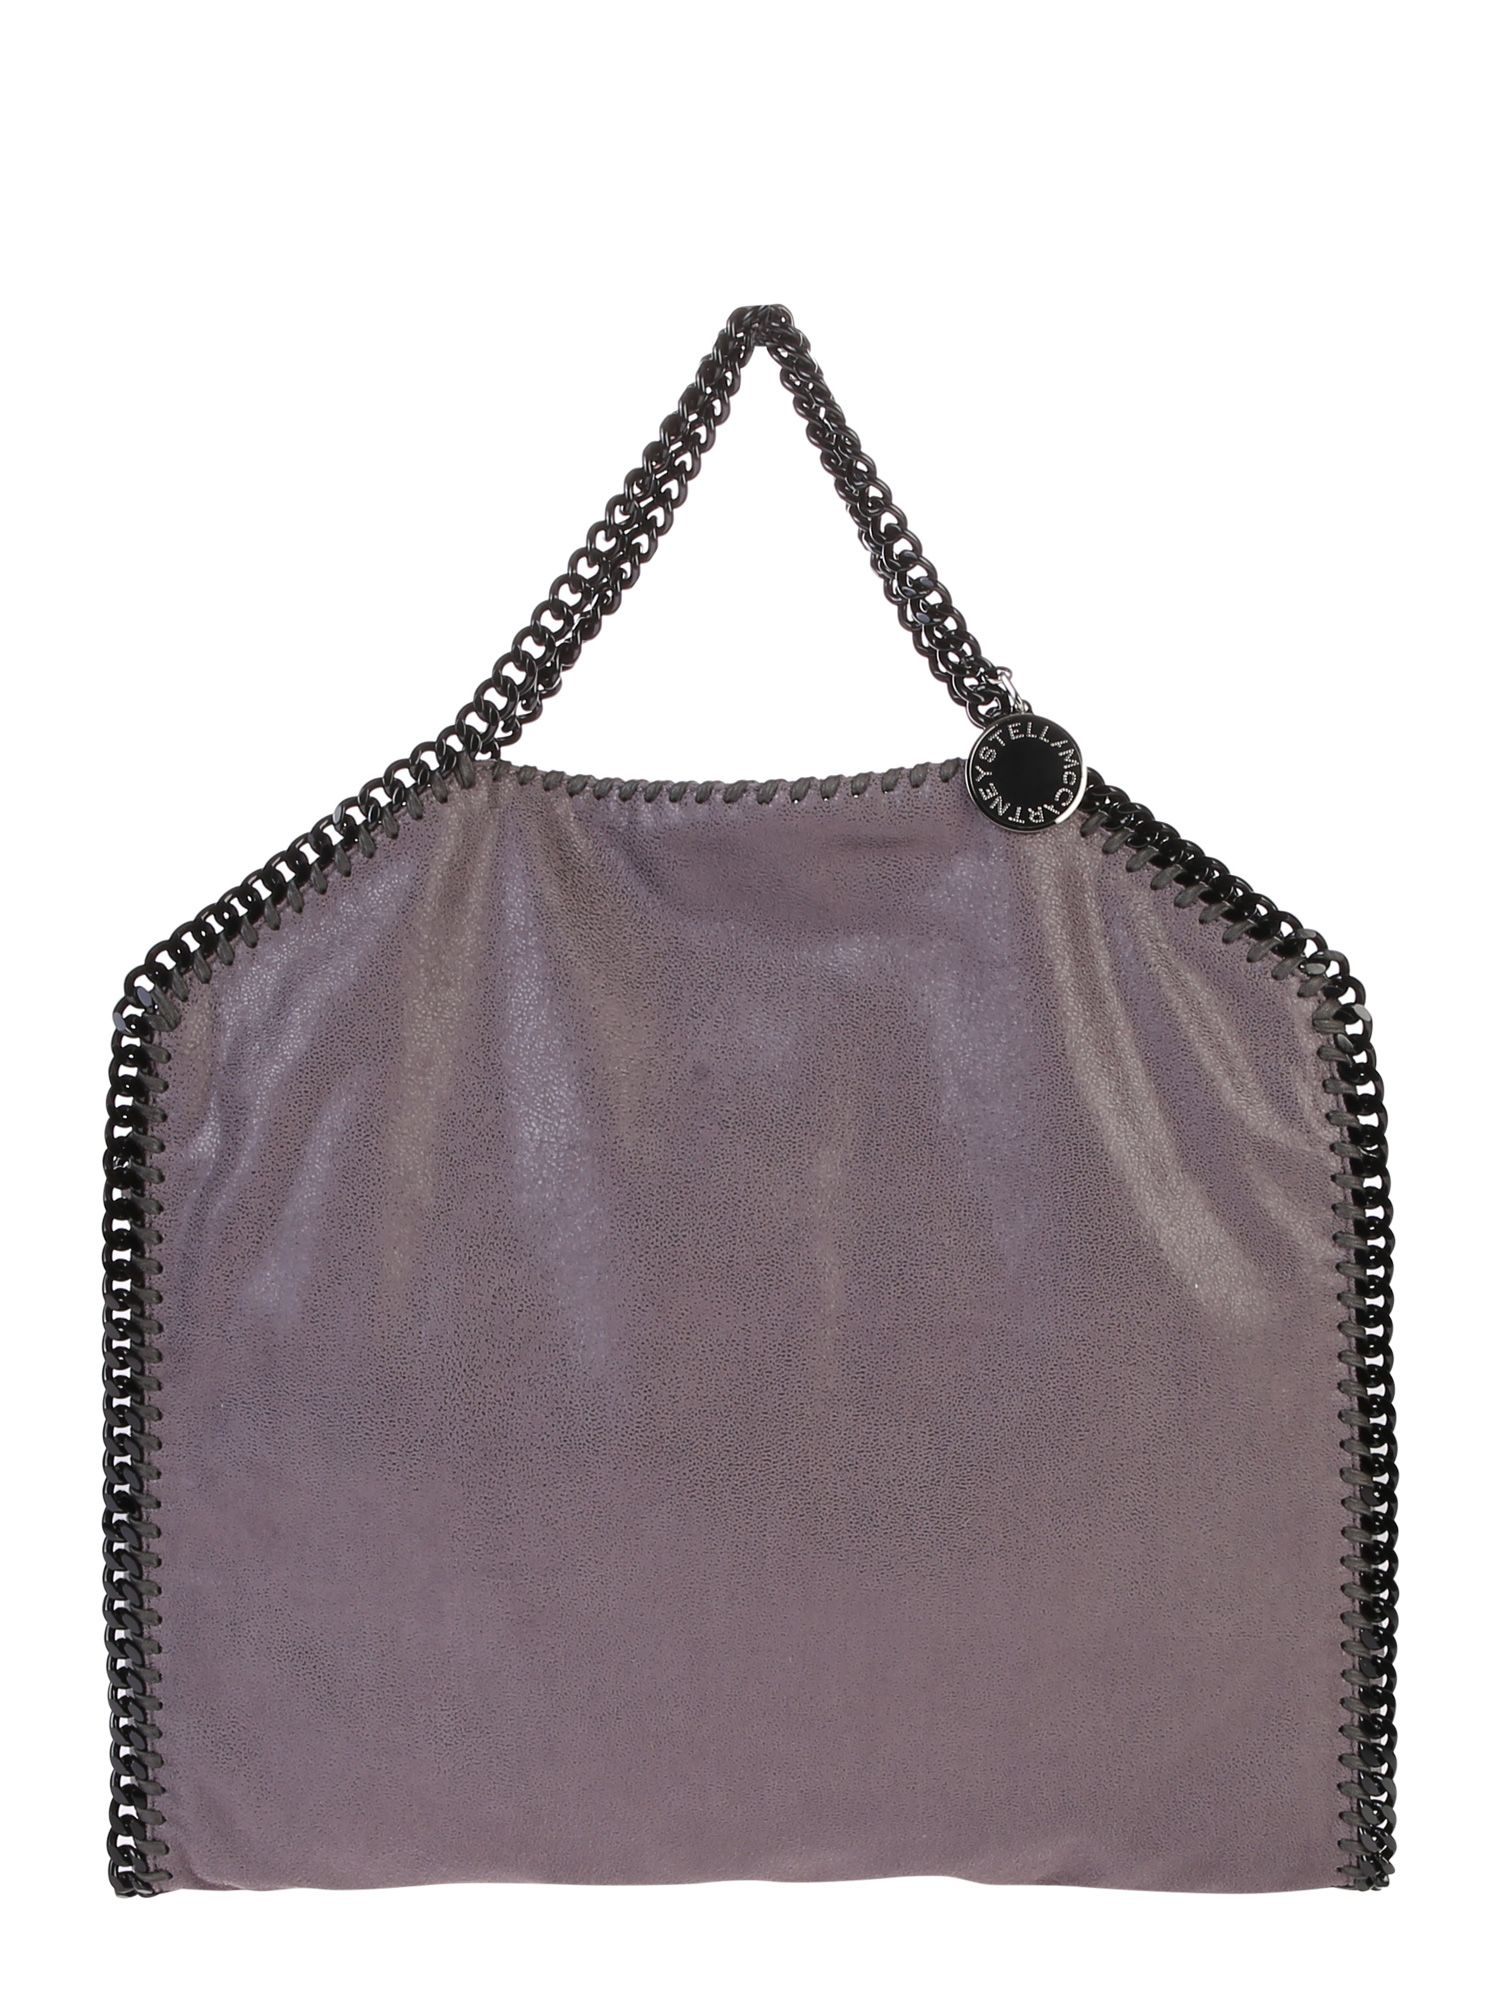 GREY FALABELLA TOTE BAG